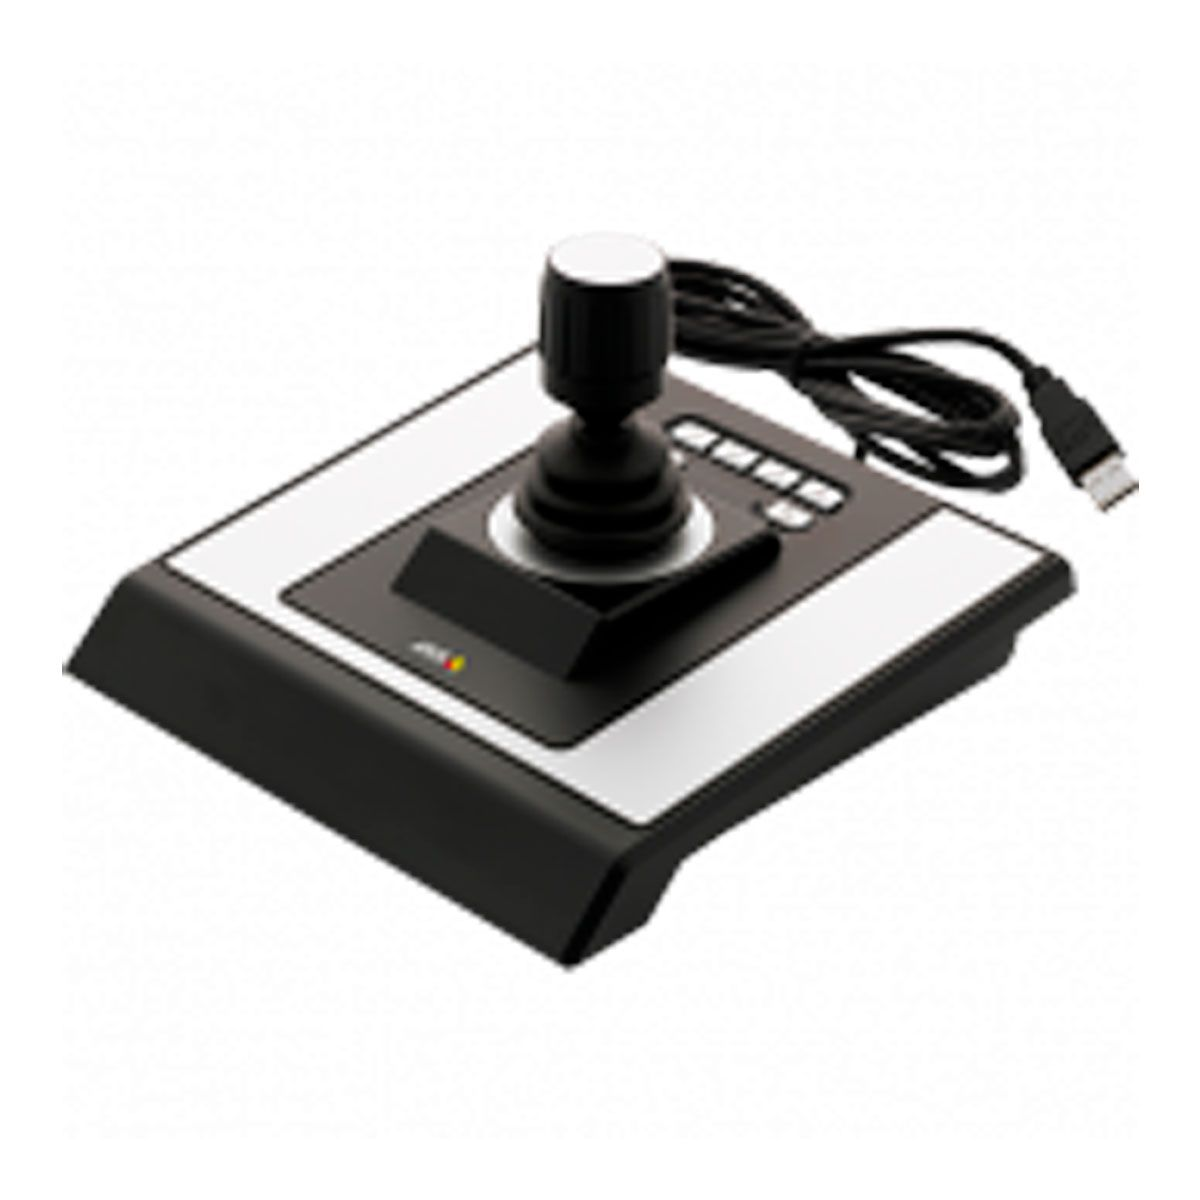 Joystick de video vigilancia AXIS T8130